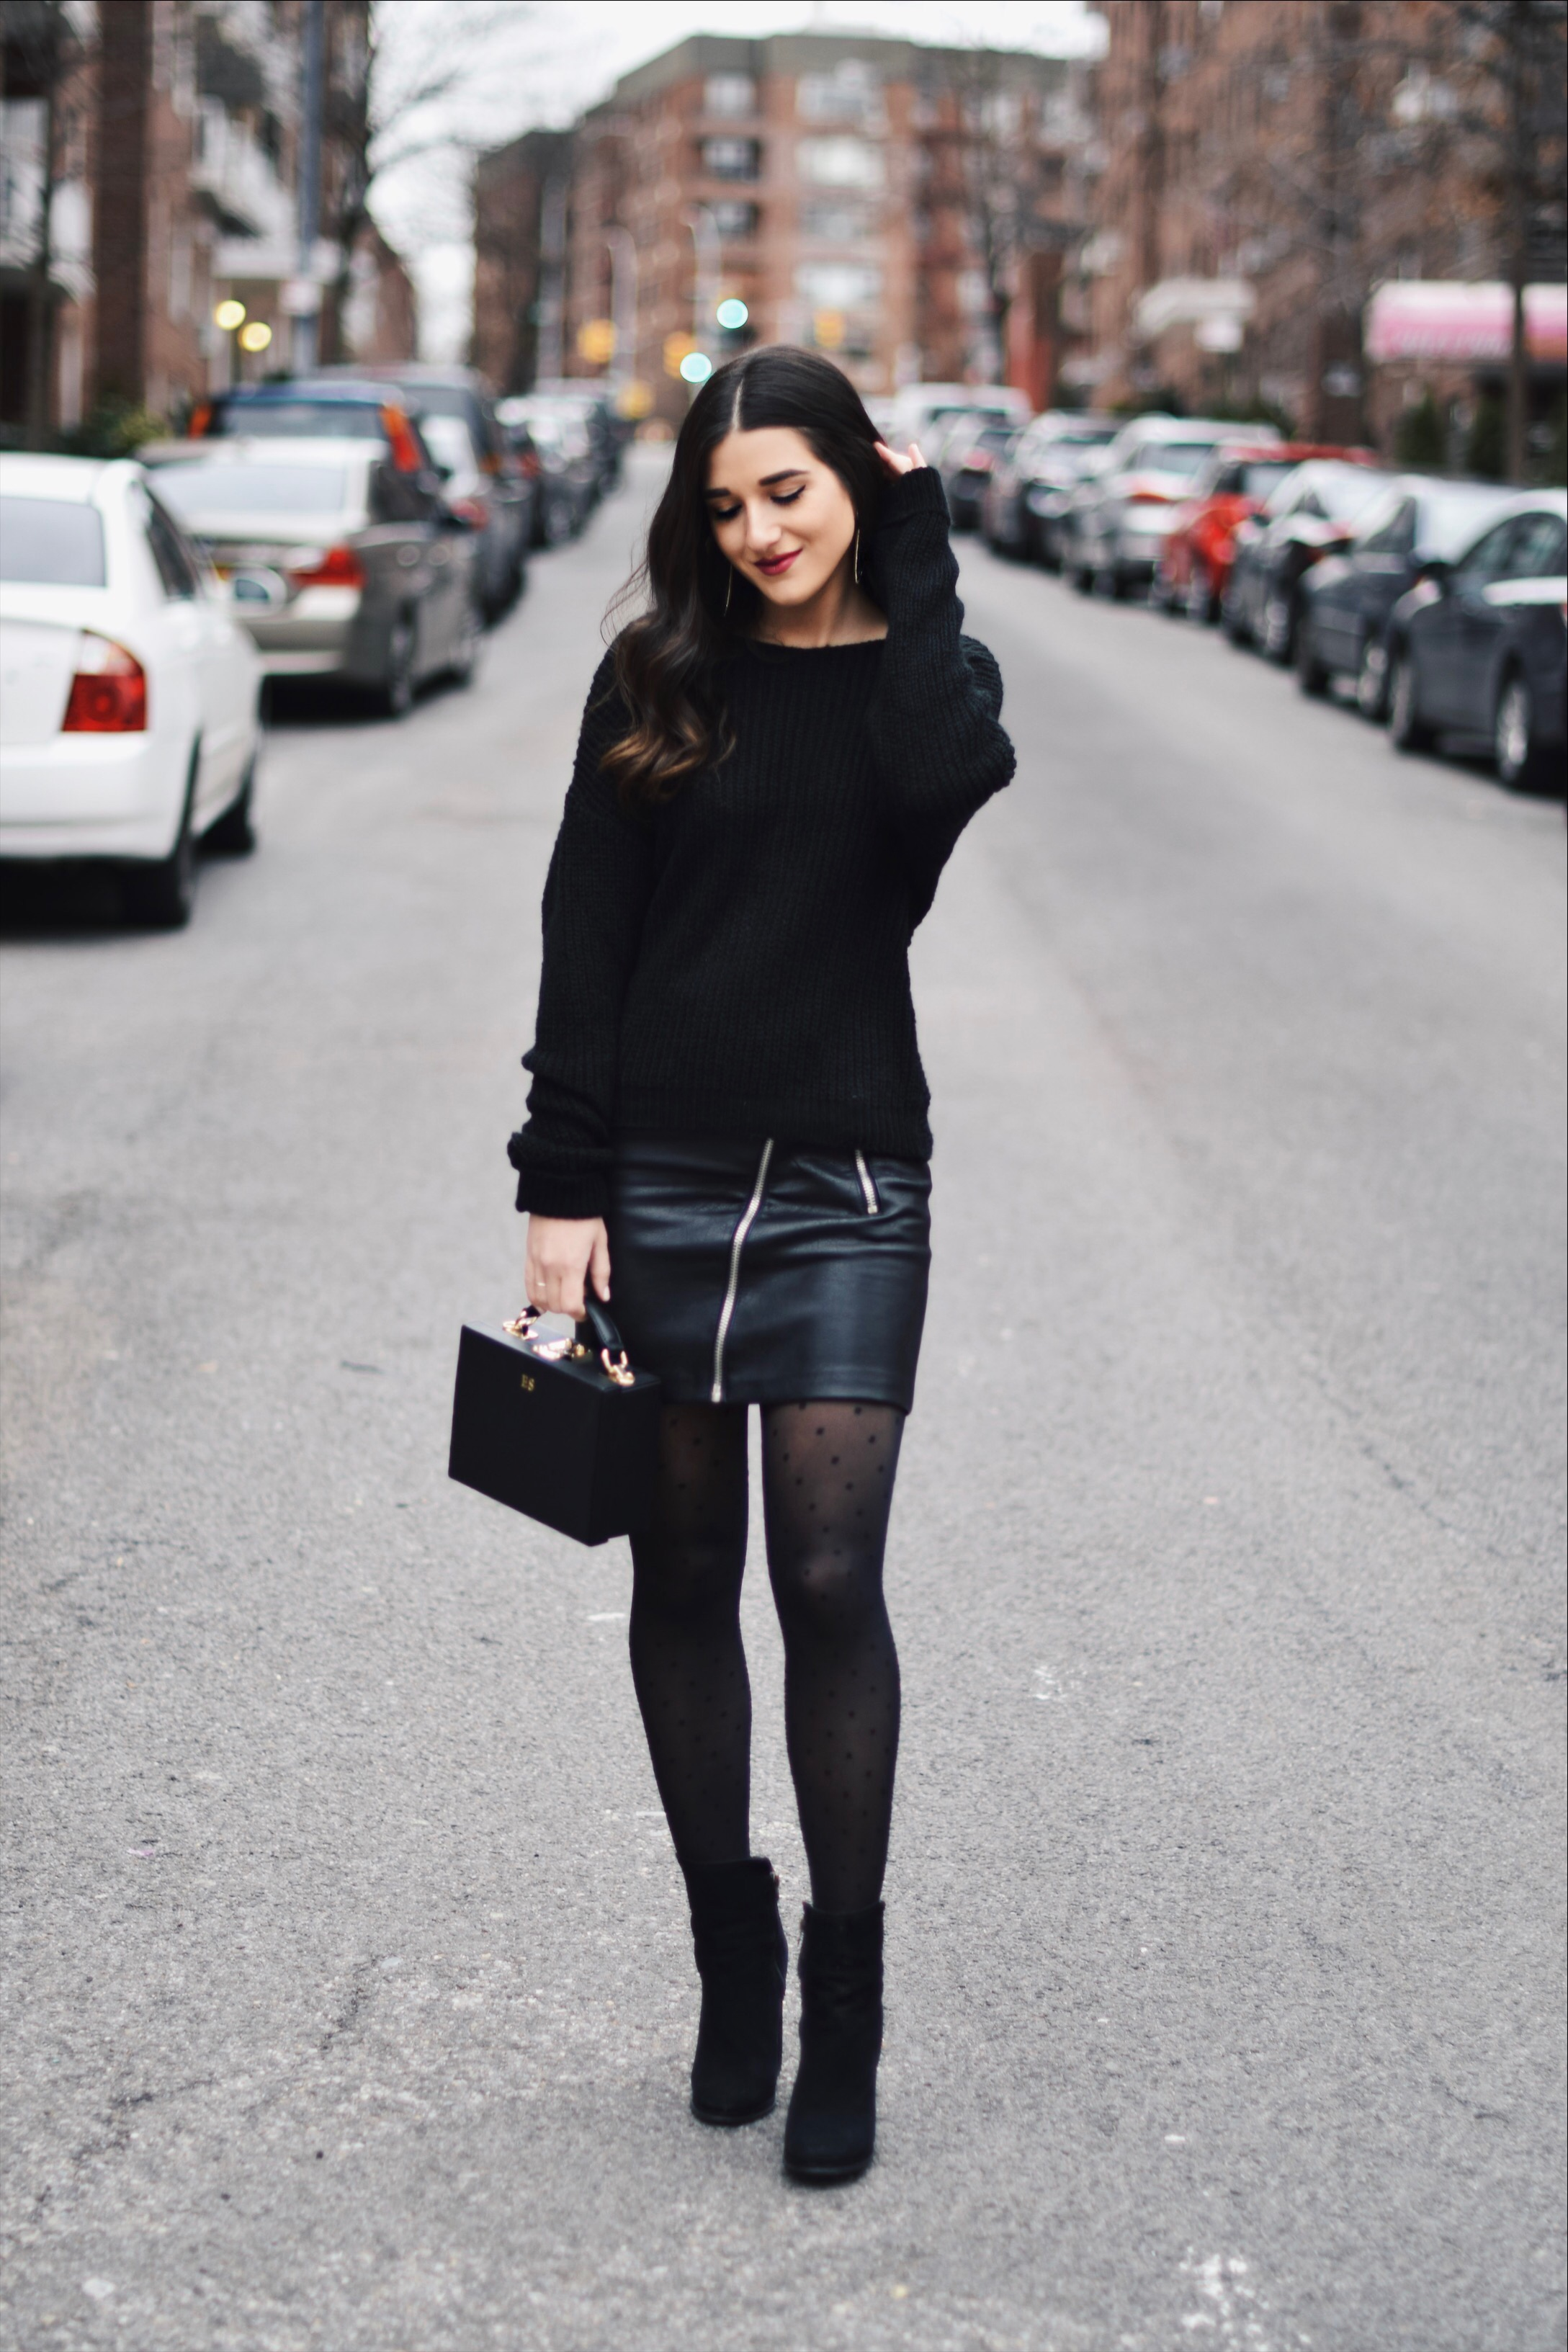 Esther Santer An Insider s Look Into The Blogging Industry. All Black Look     5 Ways To Keep Your New Year s Resolution Going Strong dd4474239